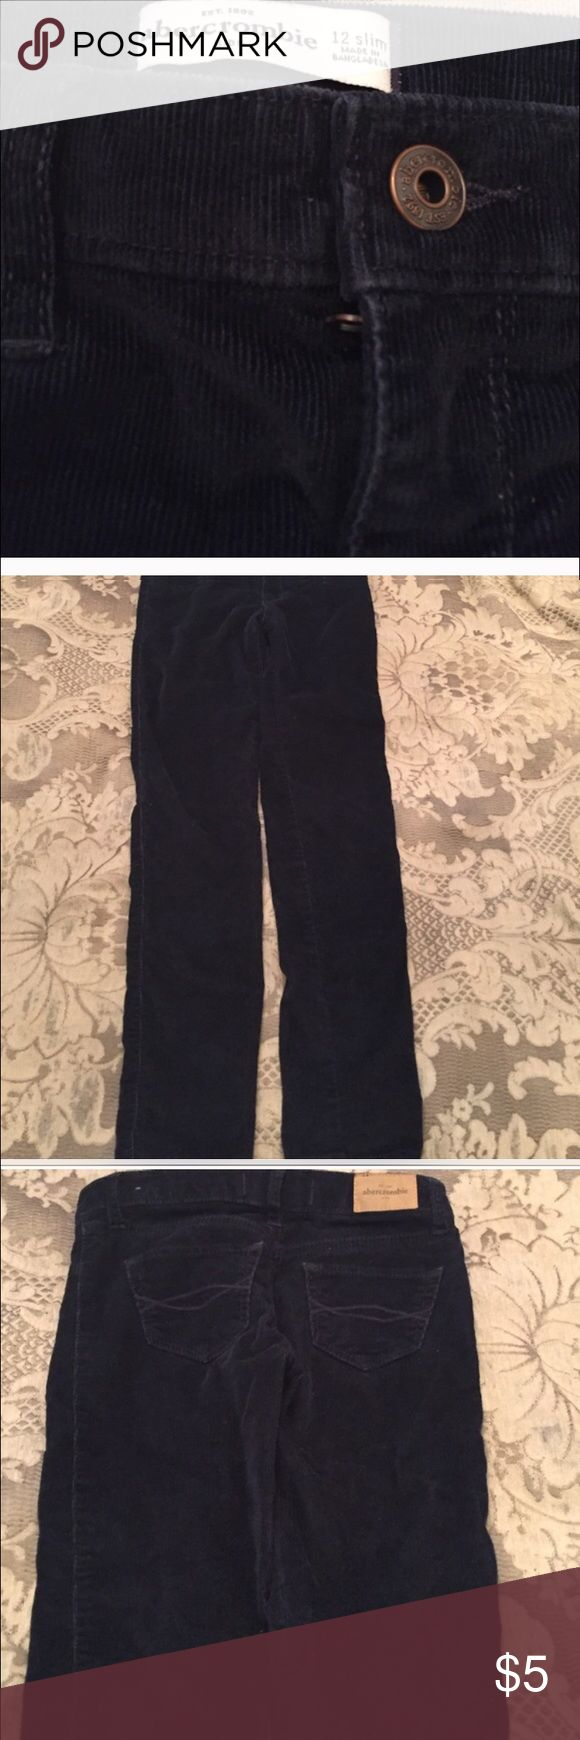 Abercrombie girls blue corduroys Blue cords Abercrombie slim fit size 12 skinny fit and skinny bottoms . 2 fake pockets in the front real pockets in the back abercrombie kids Bottoms Casual